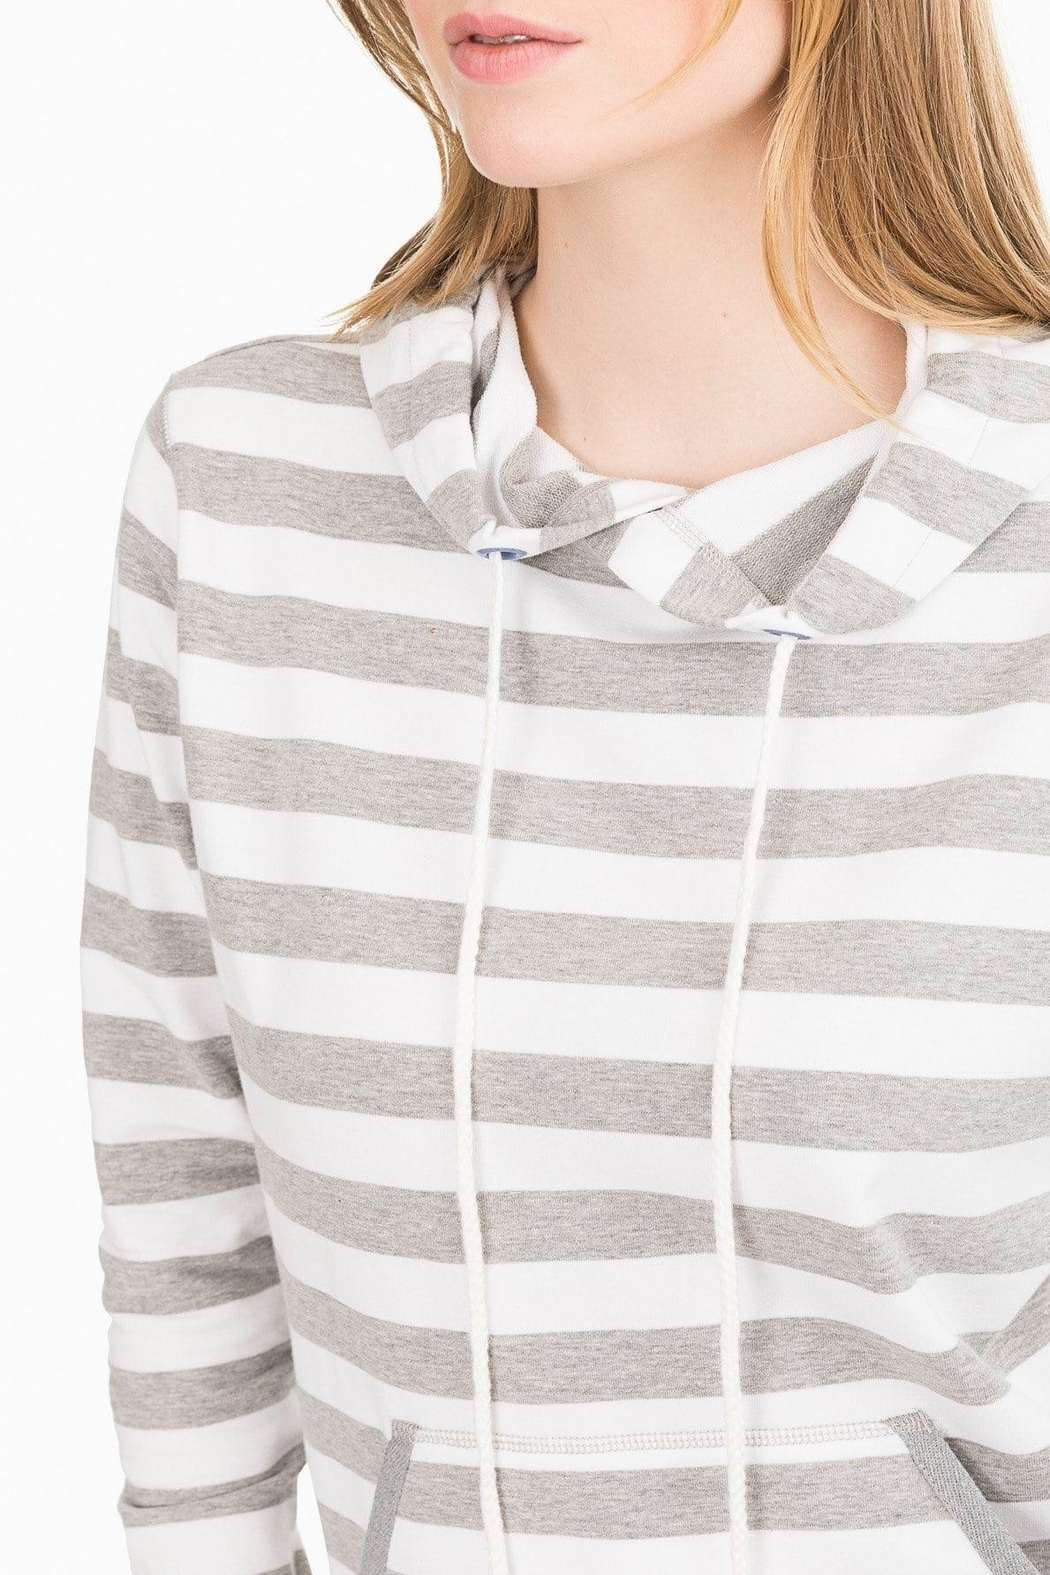 Southern Tide Soleil Striped Hoodie - Front Full Image